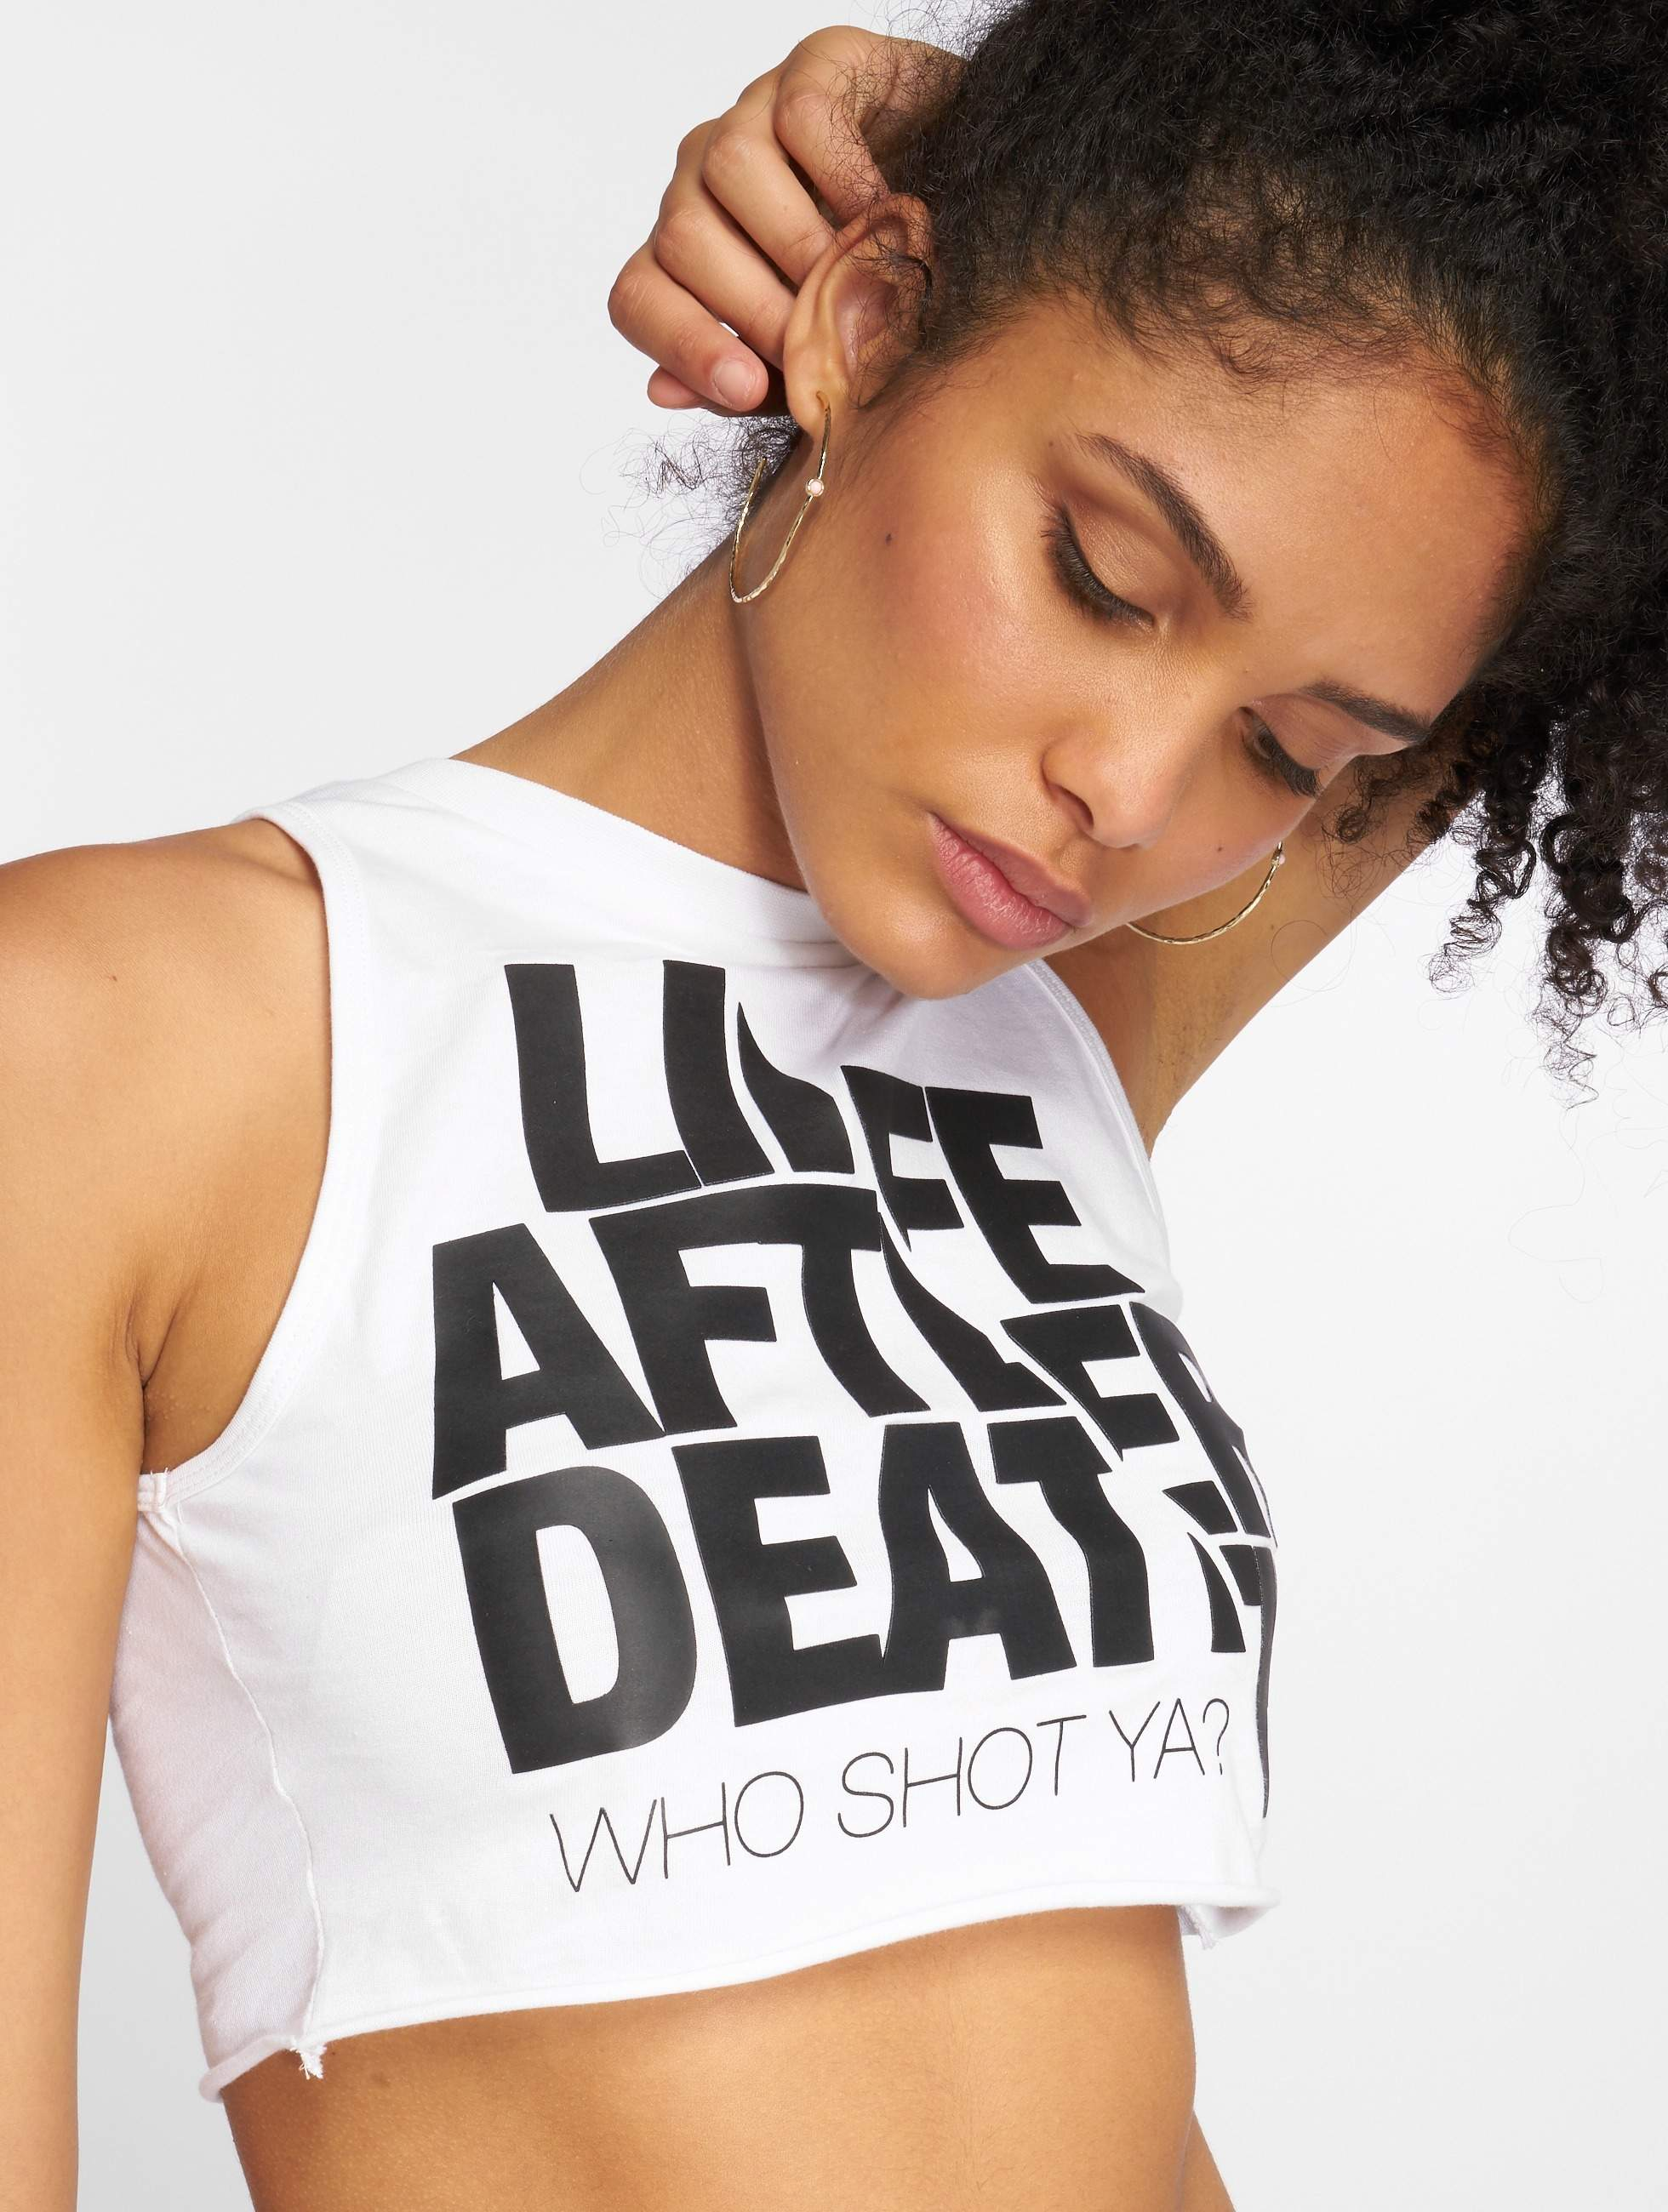 Who Shot Ya? / Tank Tops Life after death in white M